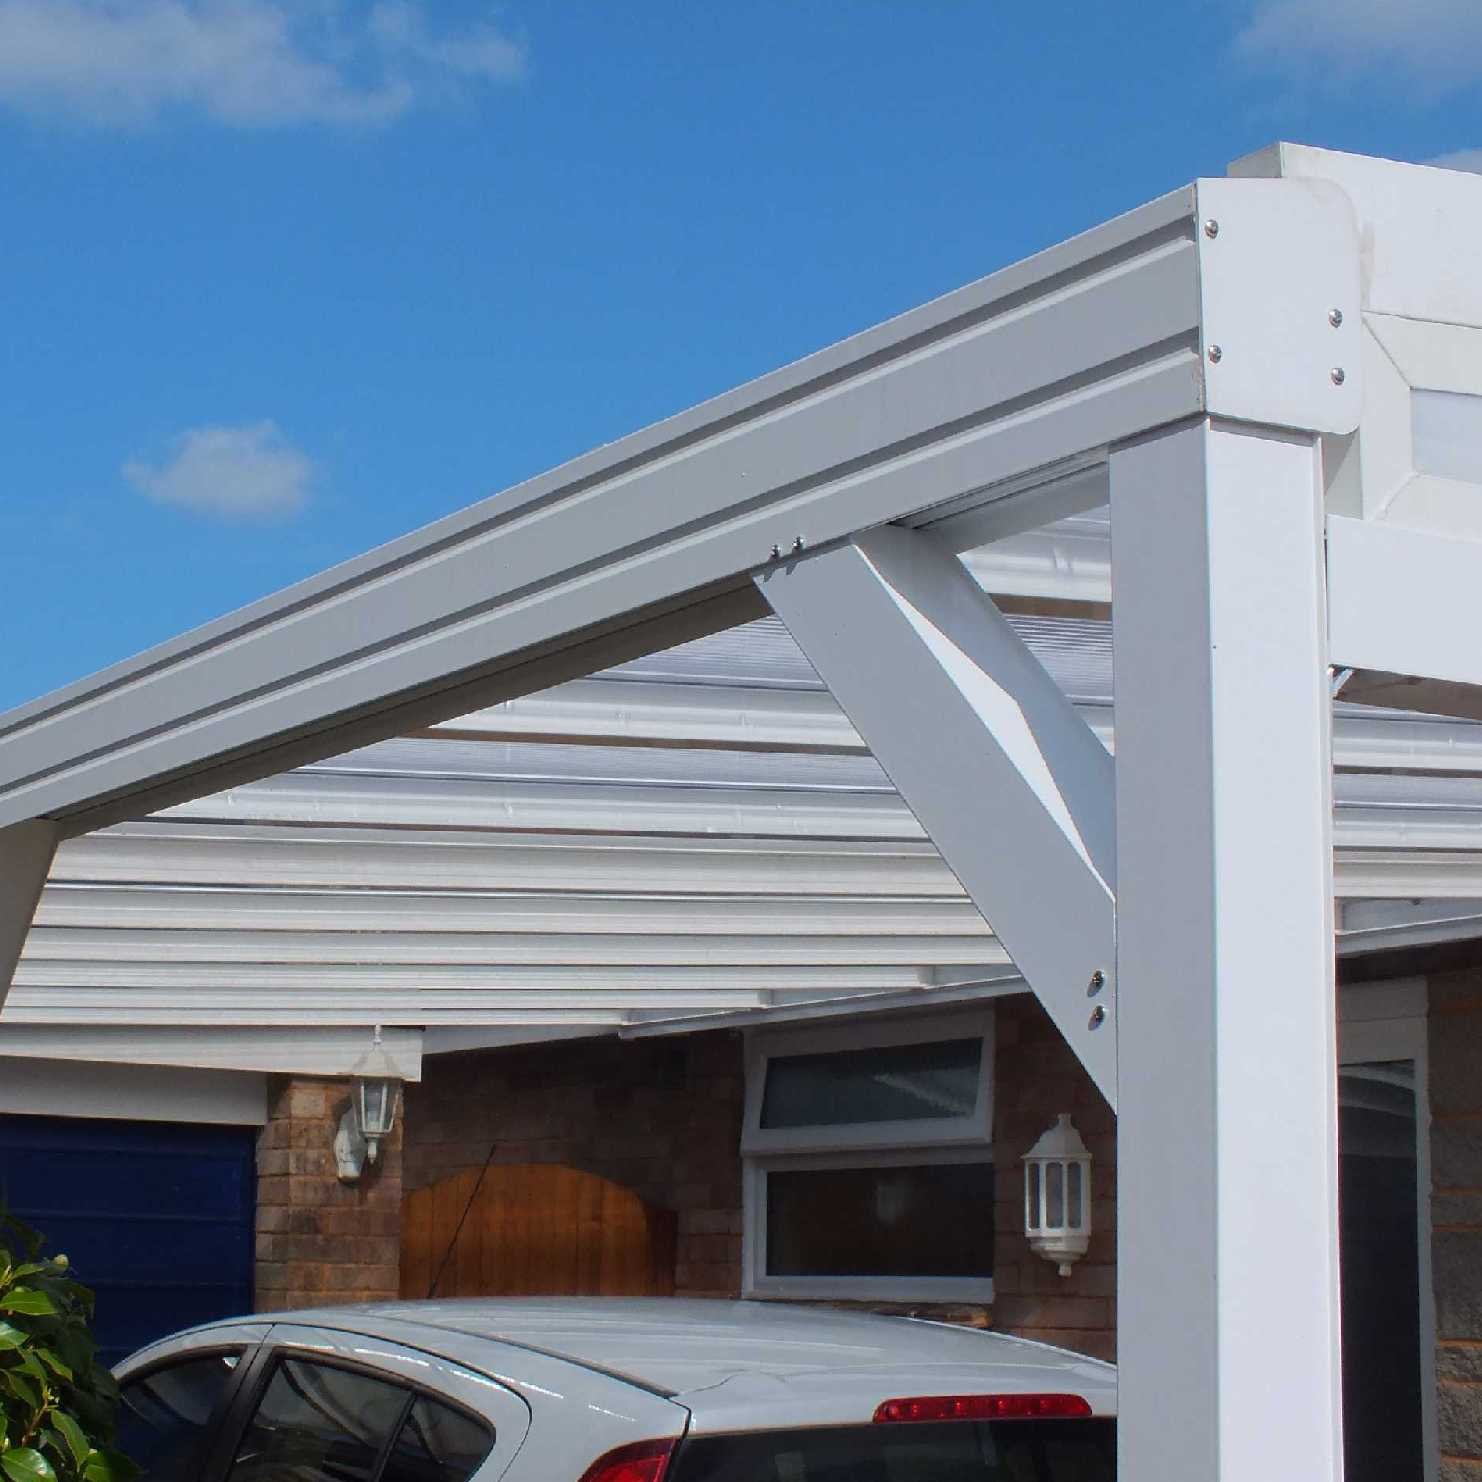 Buy Omega Smart White Lean-To Canopy with 16mm Polycarbonate Glazing - 6.0m (W) x 4.0m (P), (3) Supporting Posts online today